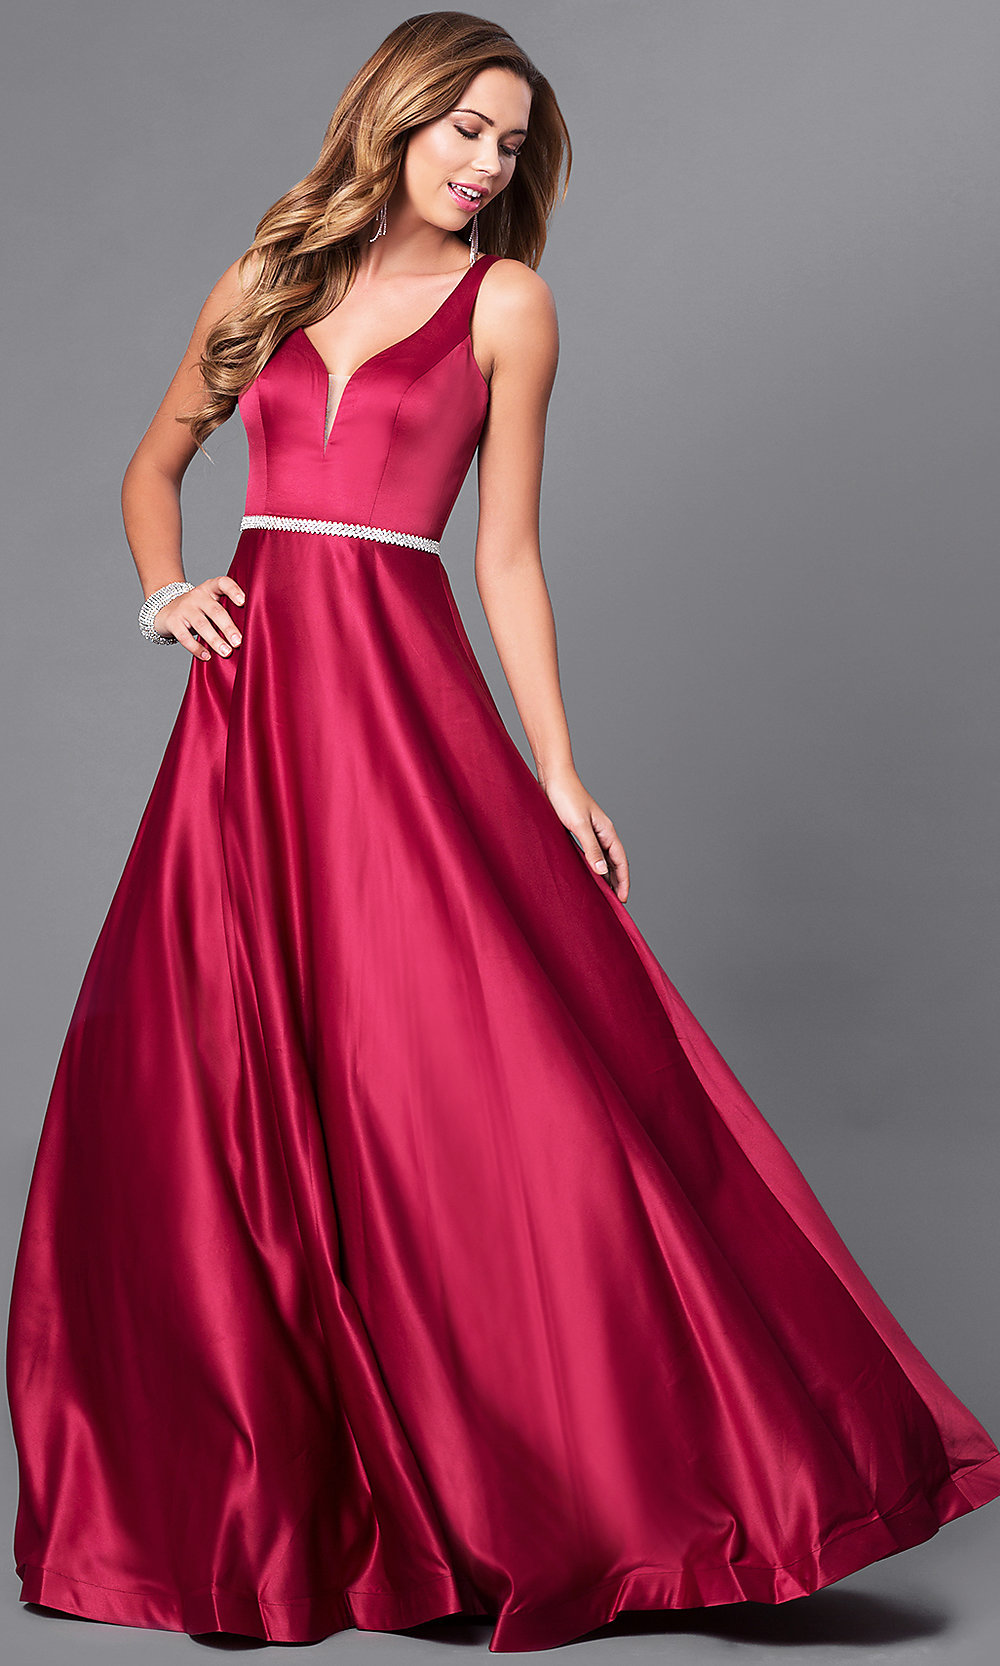 Long Prom Dresses and Formal Pageant Gowns - PromGirl